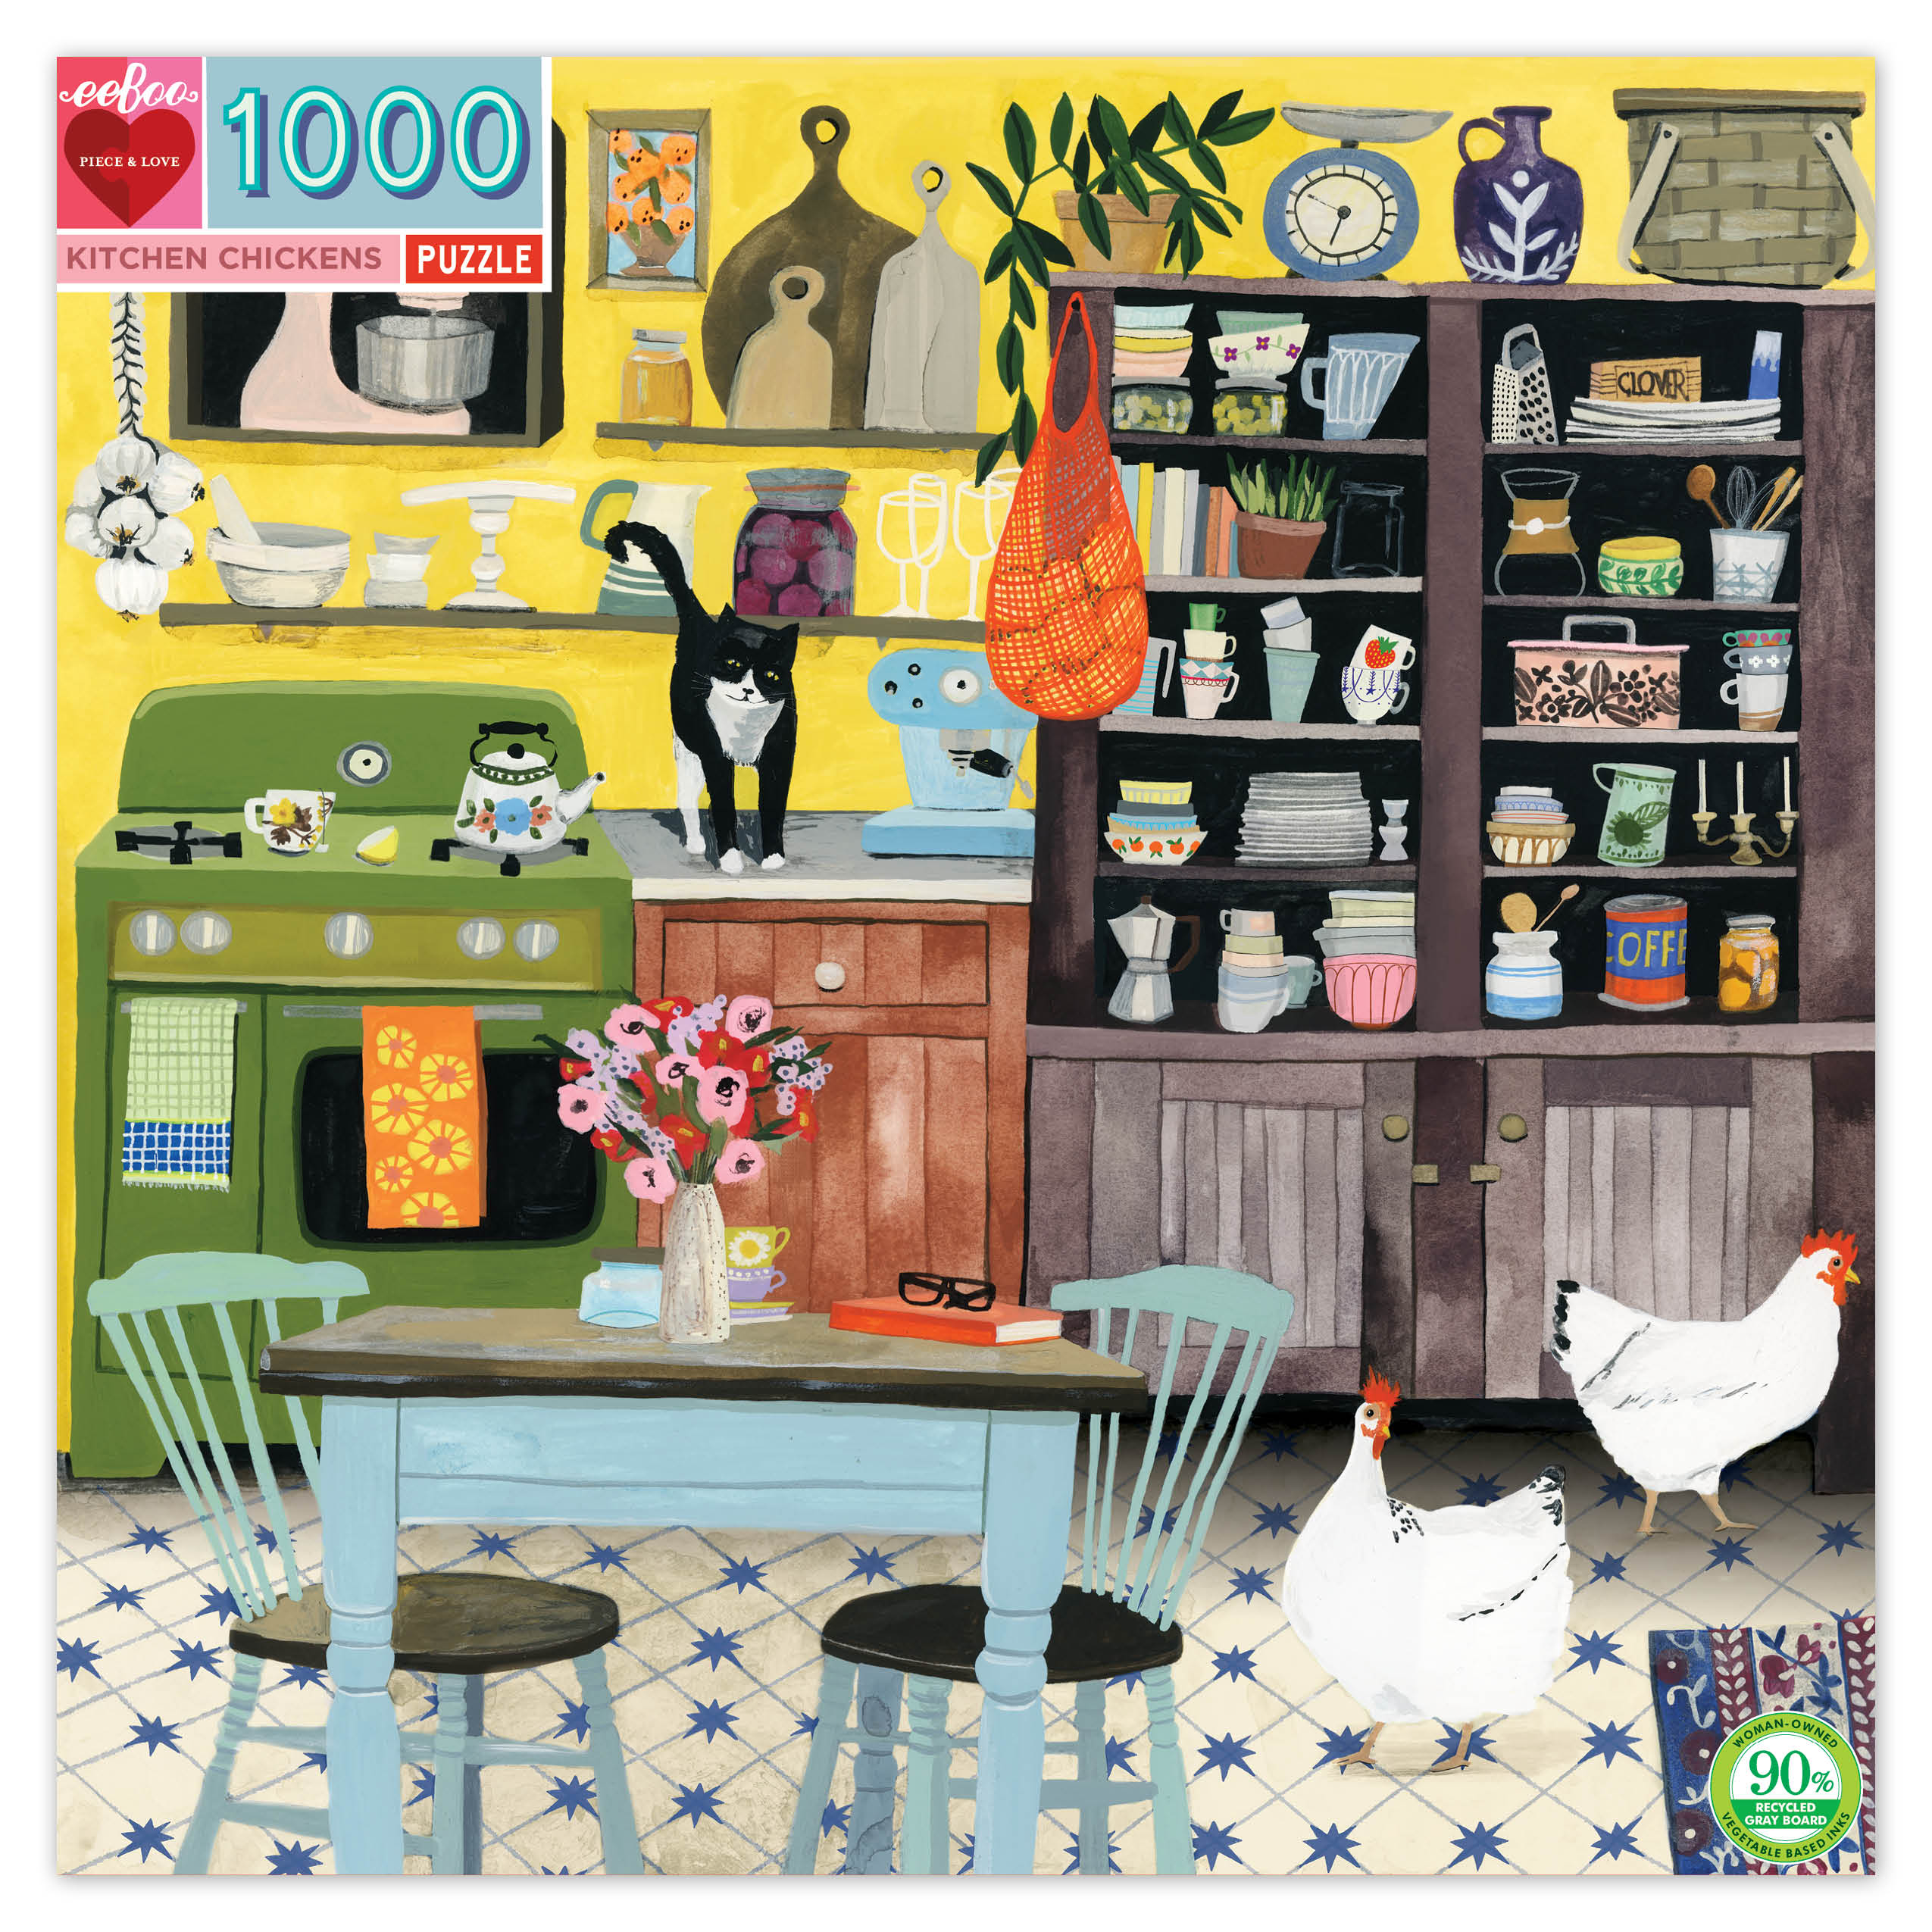 Kitchen Chickens 1000 Piece Jigsaw Puzzle by eeboo